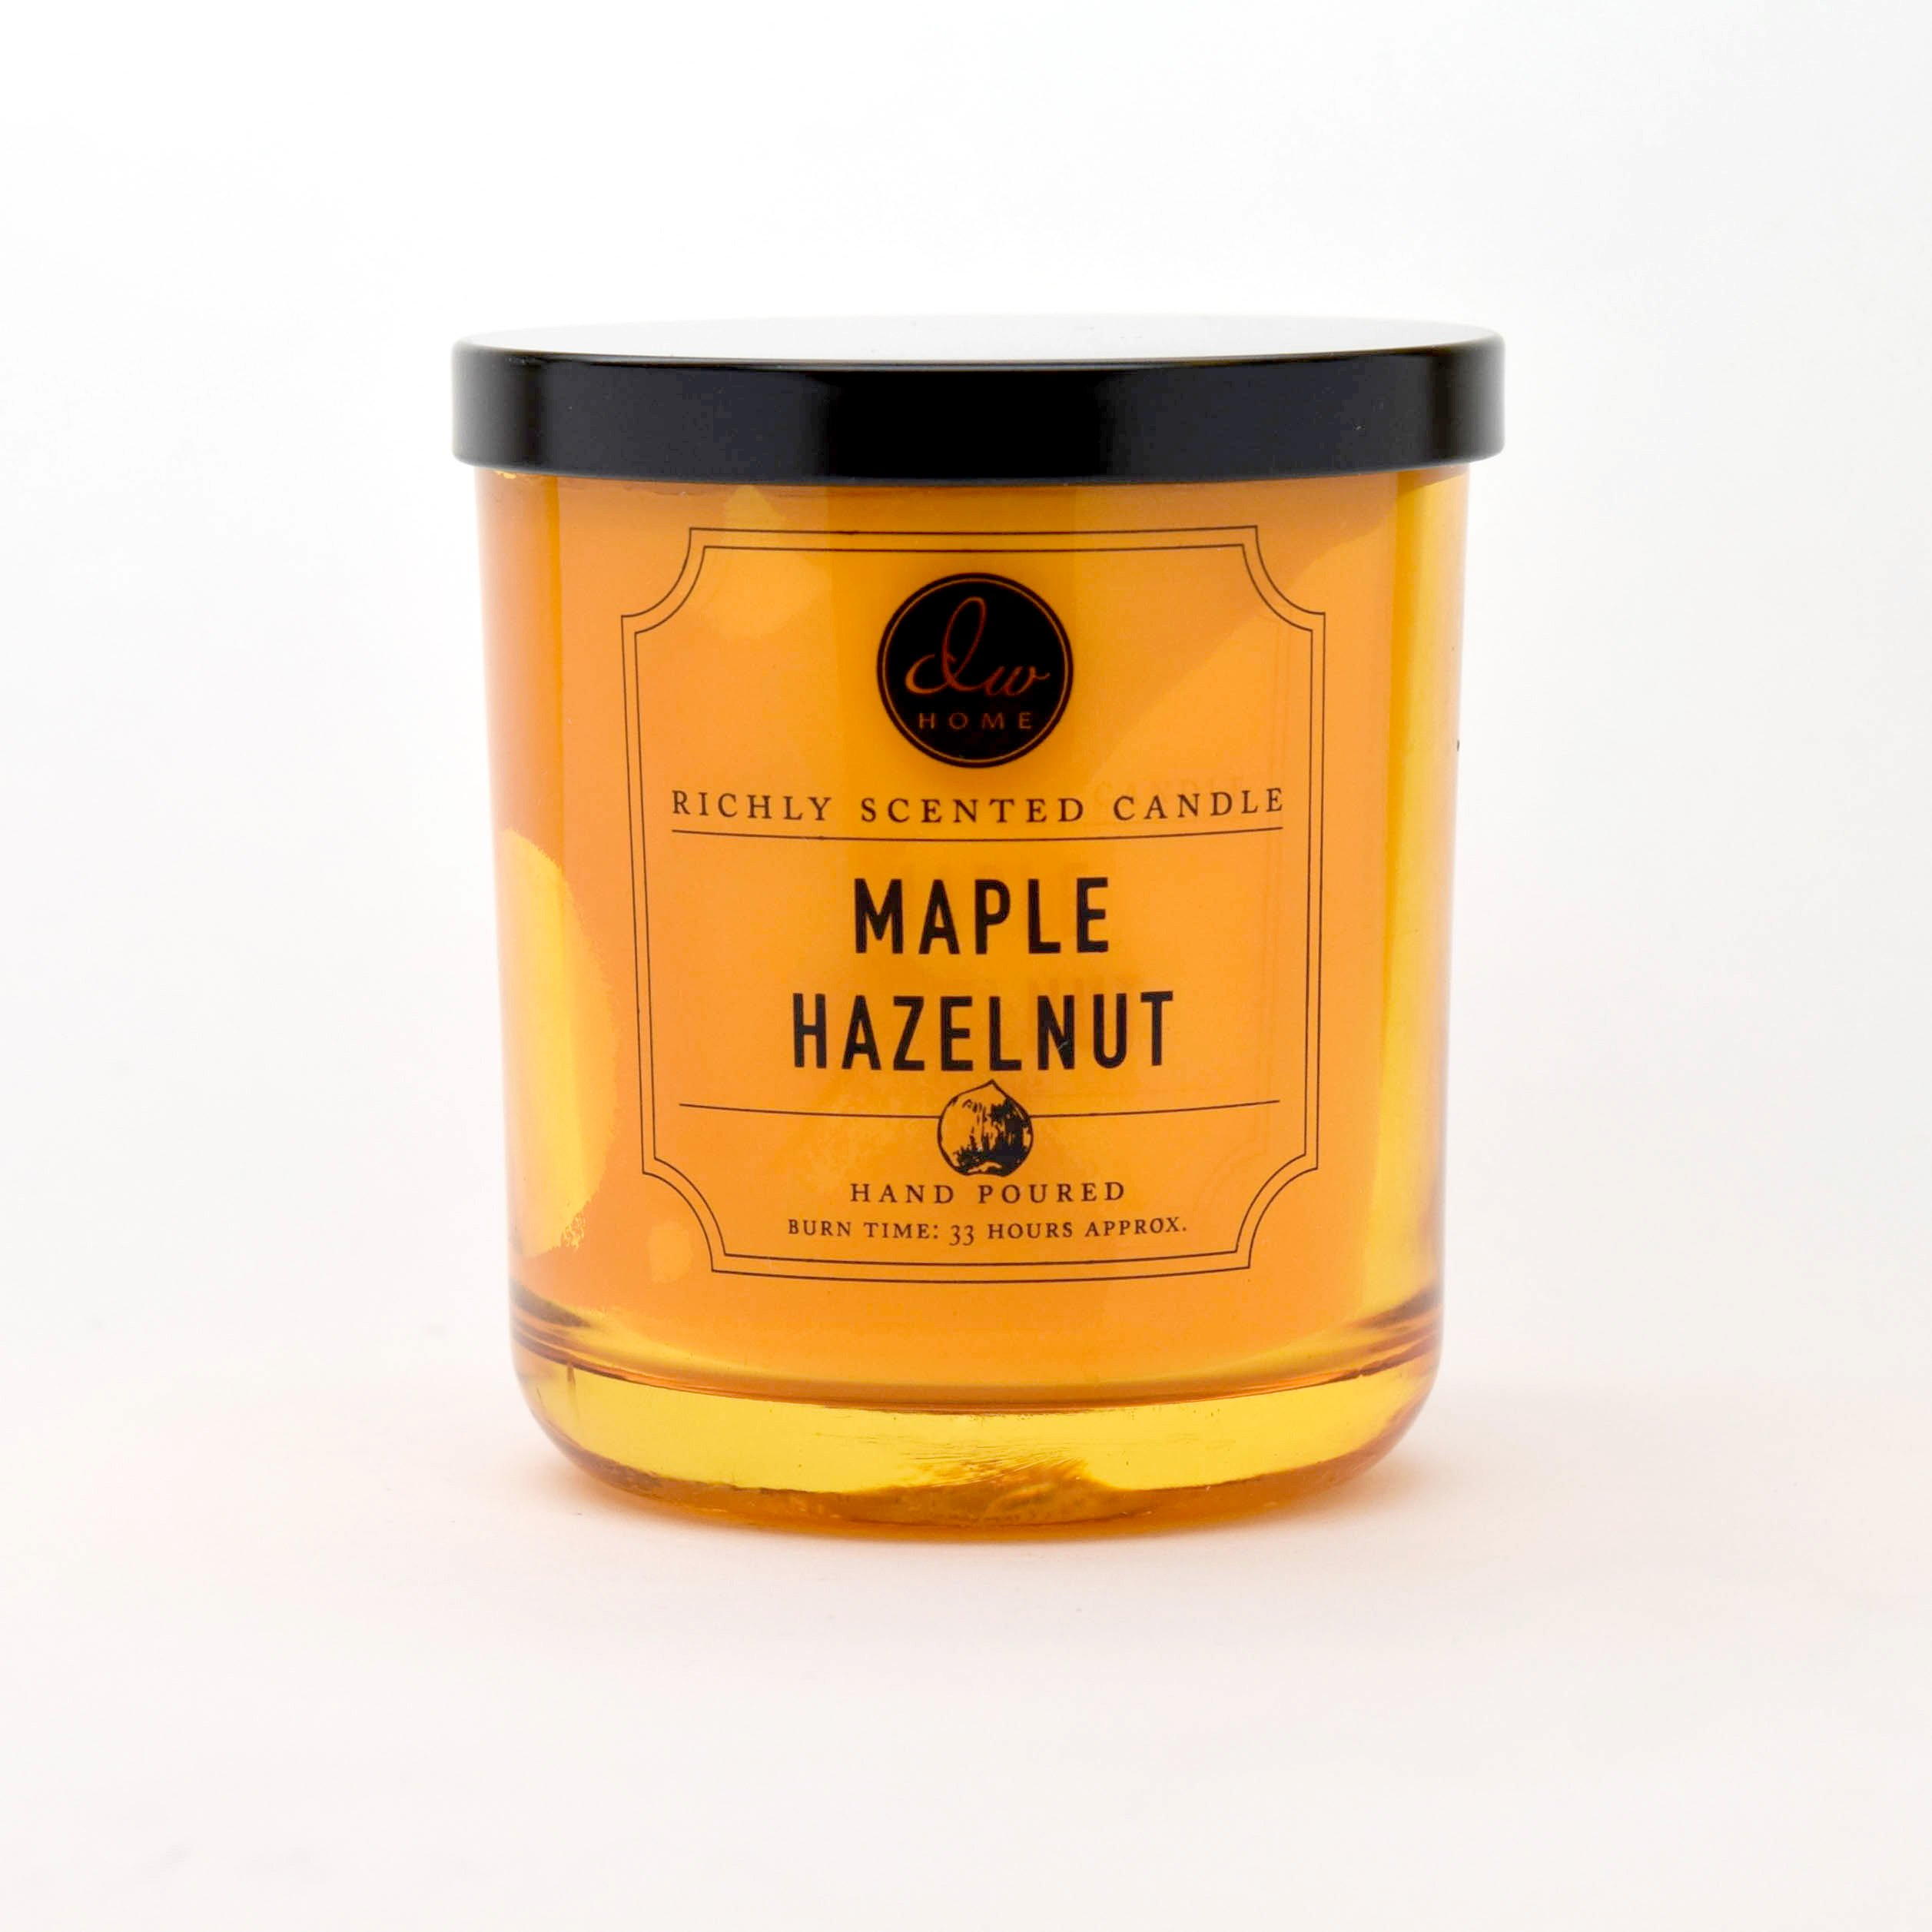 DW Home Maple Hazelnut Scented Candle 9.69 Oz In Heavy Tinted Glass Jar